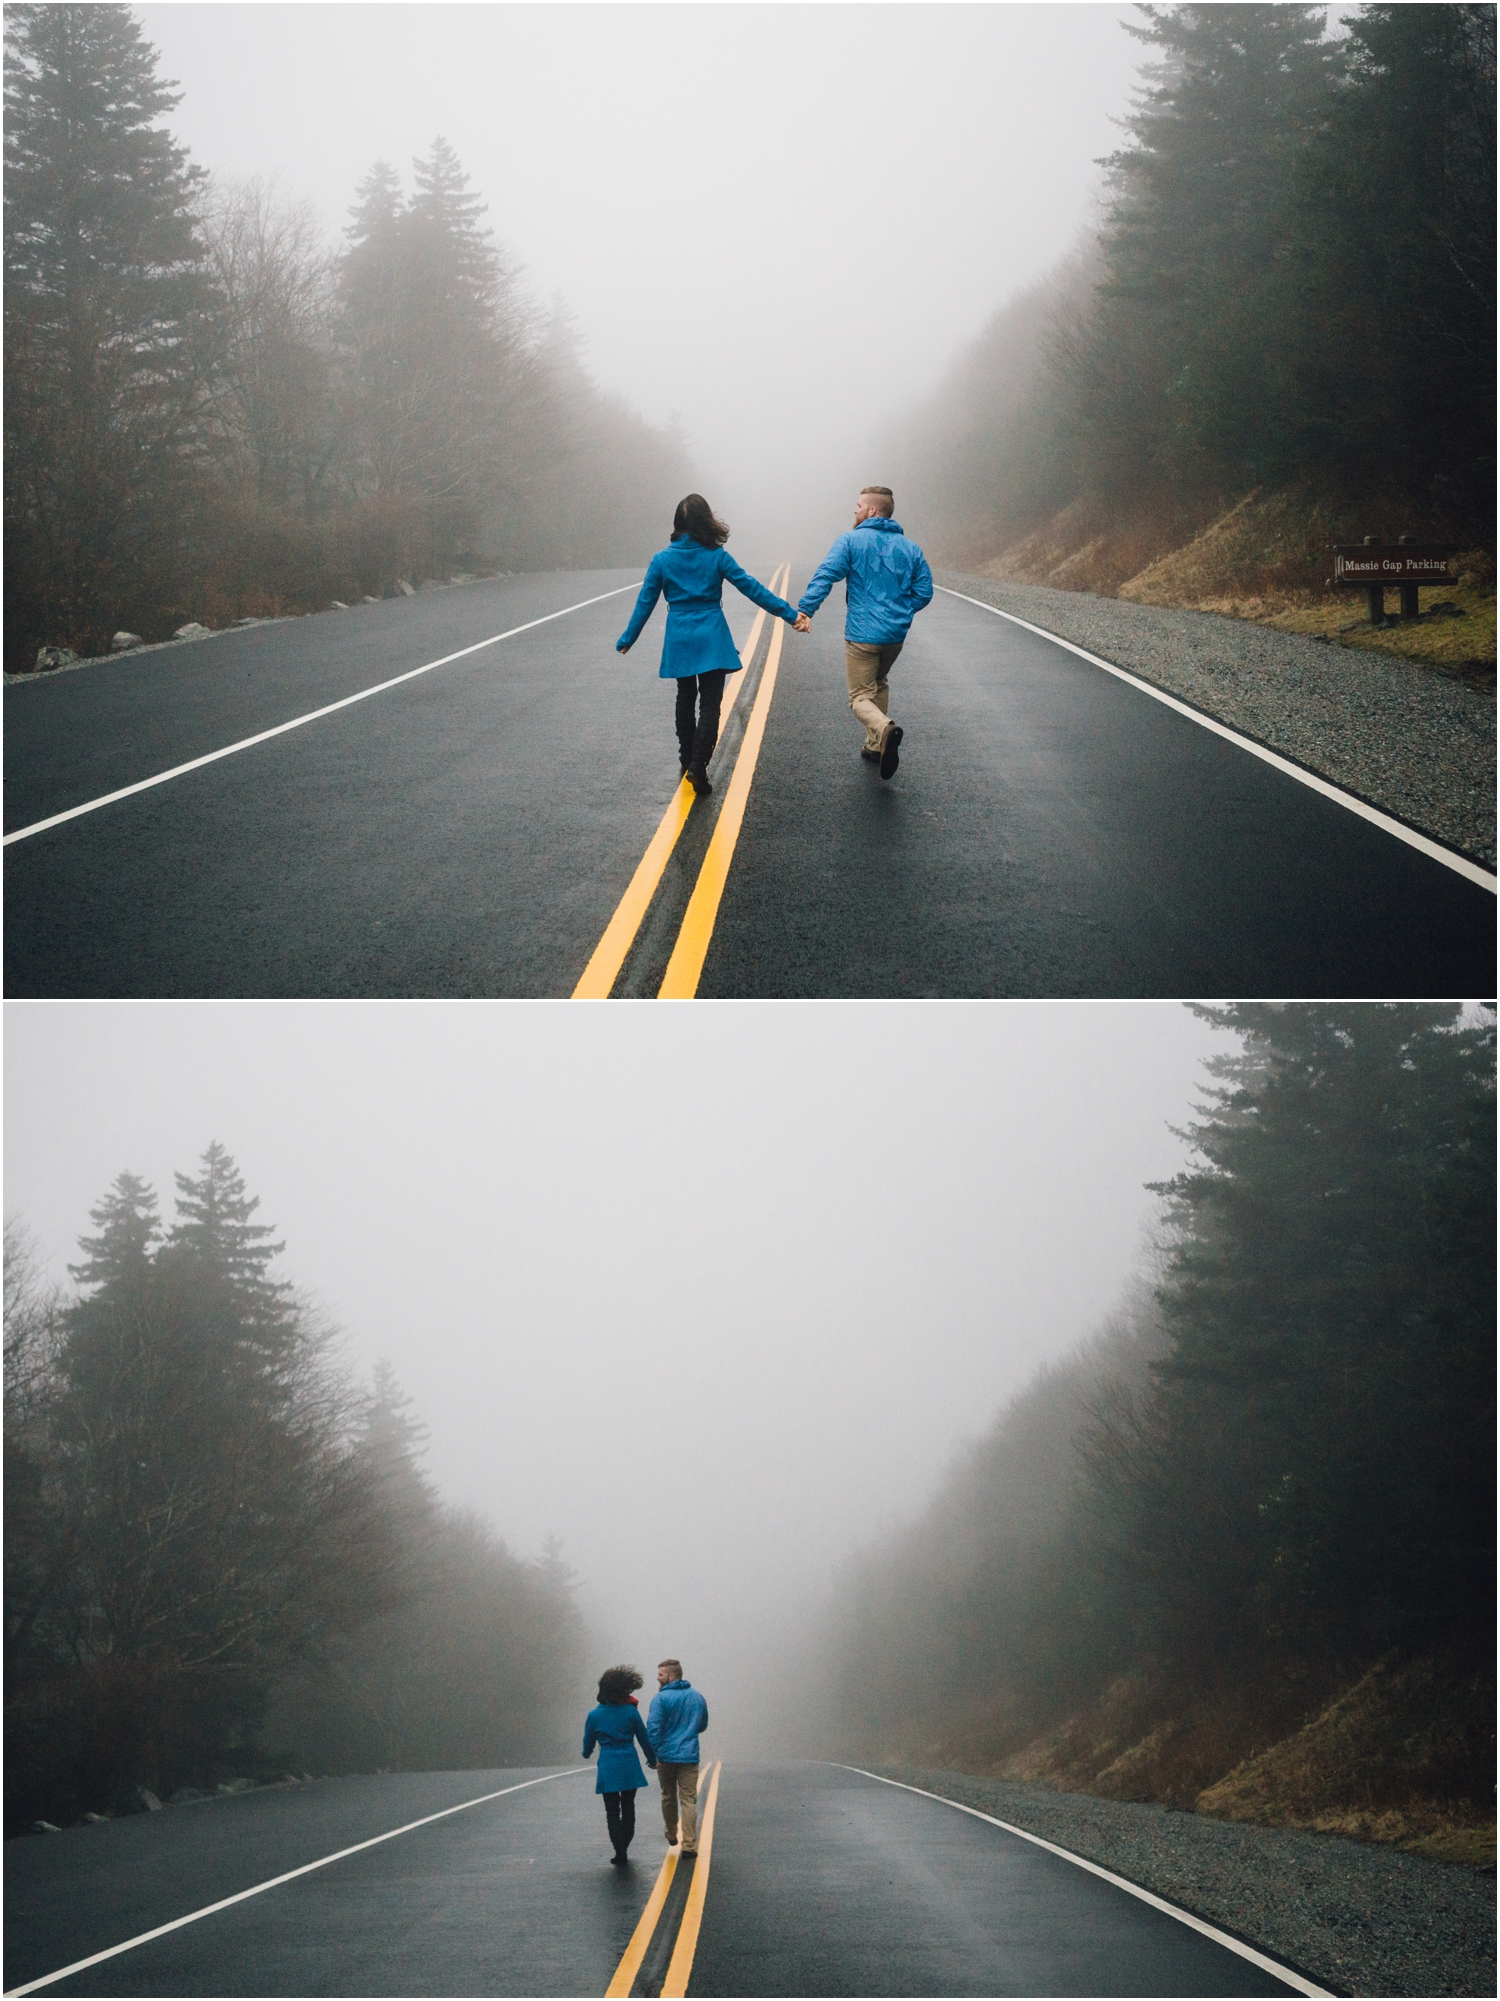 katy-sergent-photography-grayson-highlands-engagement-session-mouth-of-wilson-virginia-damascus-appalachian-trail-tennessee-wedding-elopement_0015.jpg